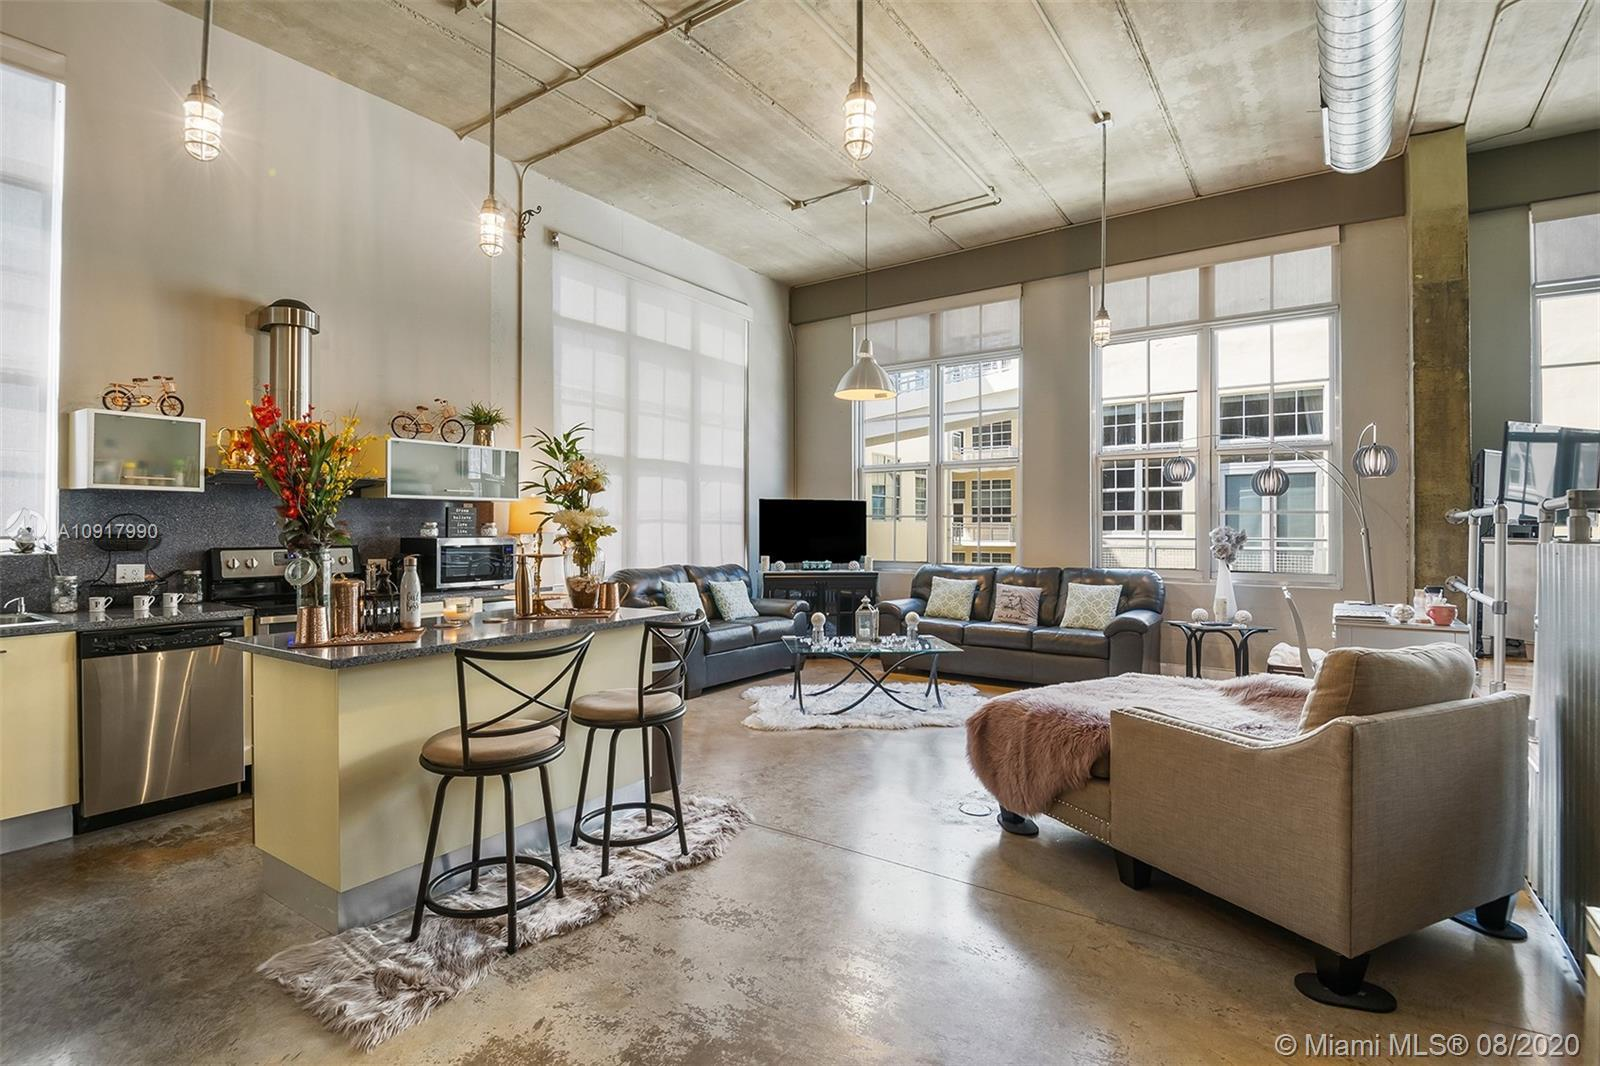 Dramatic NY style loft condo in the heart of Fort Lauderdale. This rarely available top floor corner